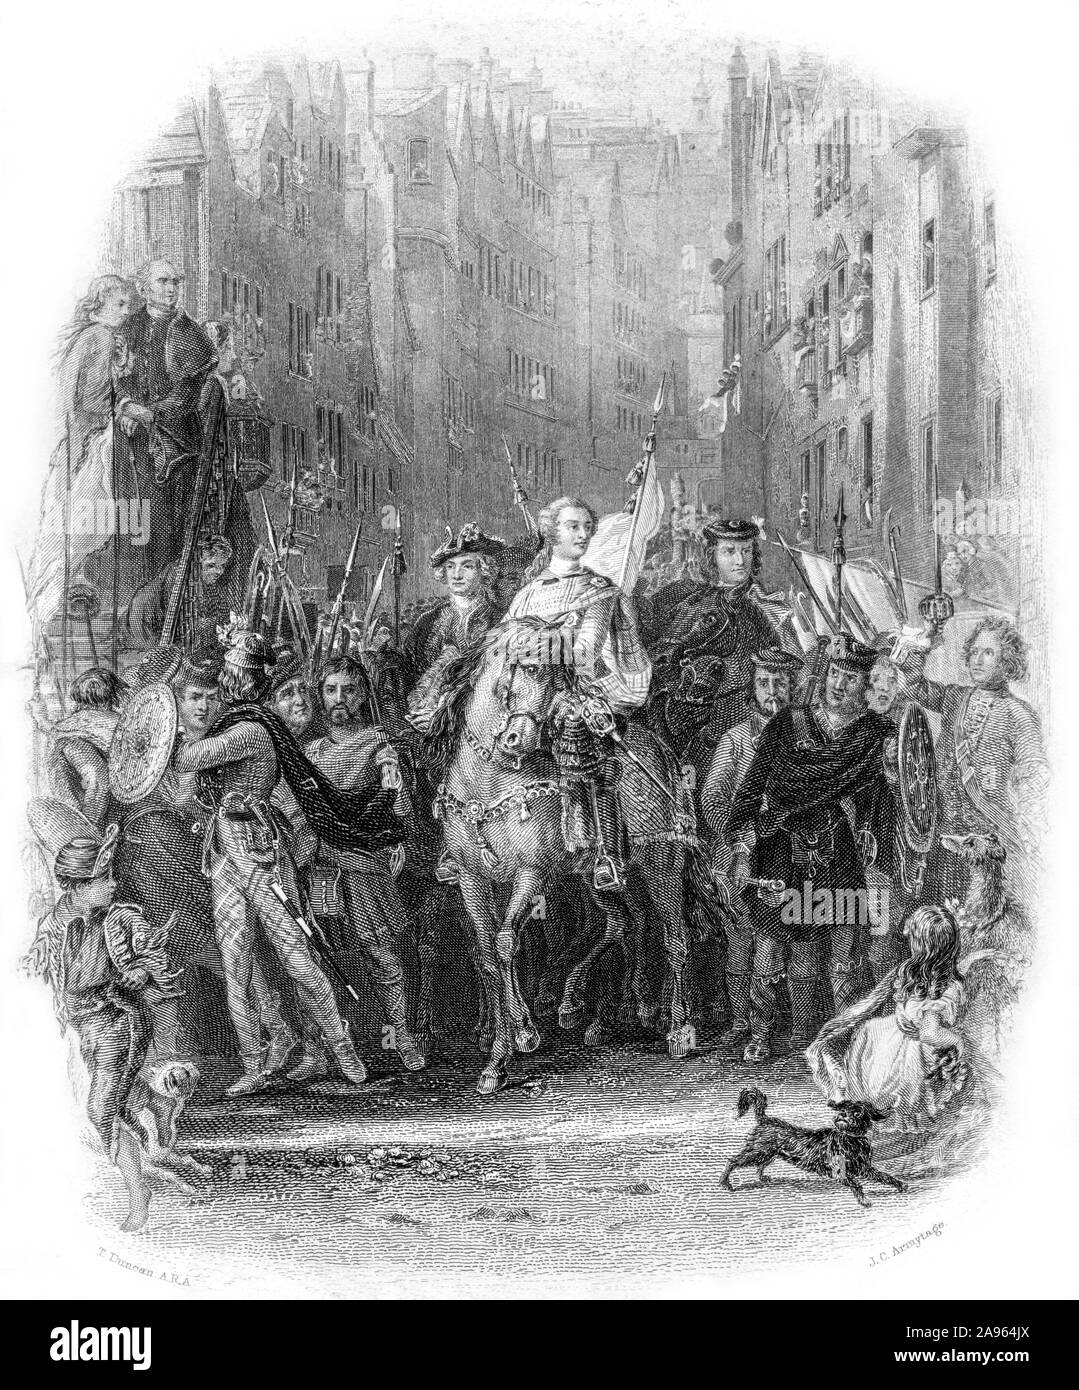 An engraving of Prince Charles Edward Stuart (Bonnie Prince Charlie) and the Highlanders Entering Edinburgh after the Battle of Preston Pans (1745) . Stock Photo